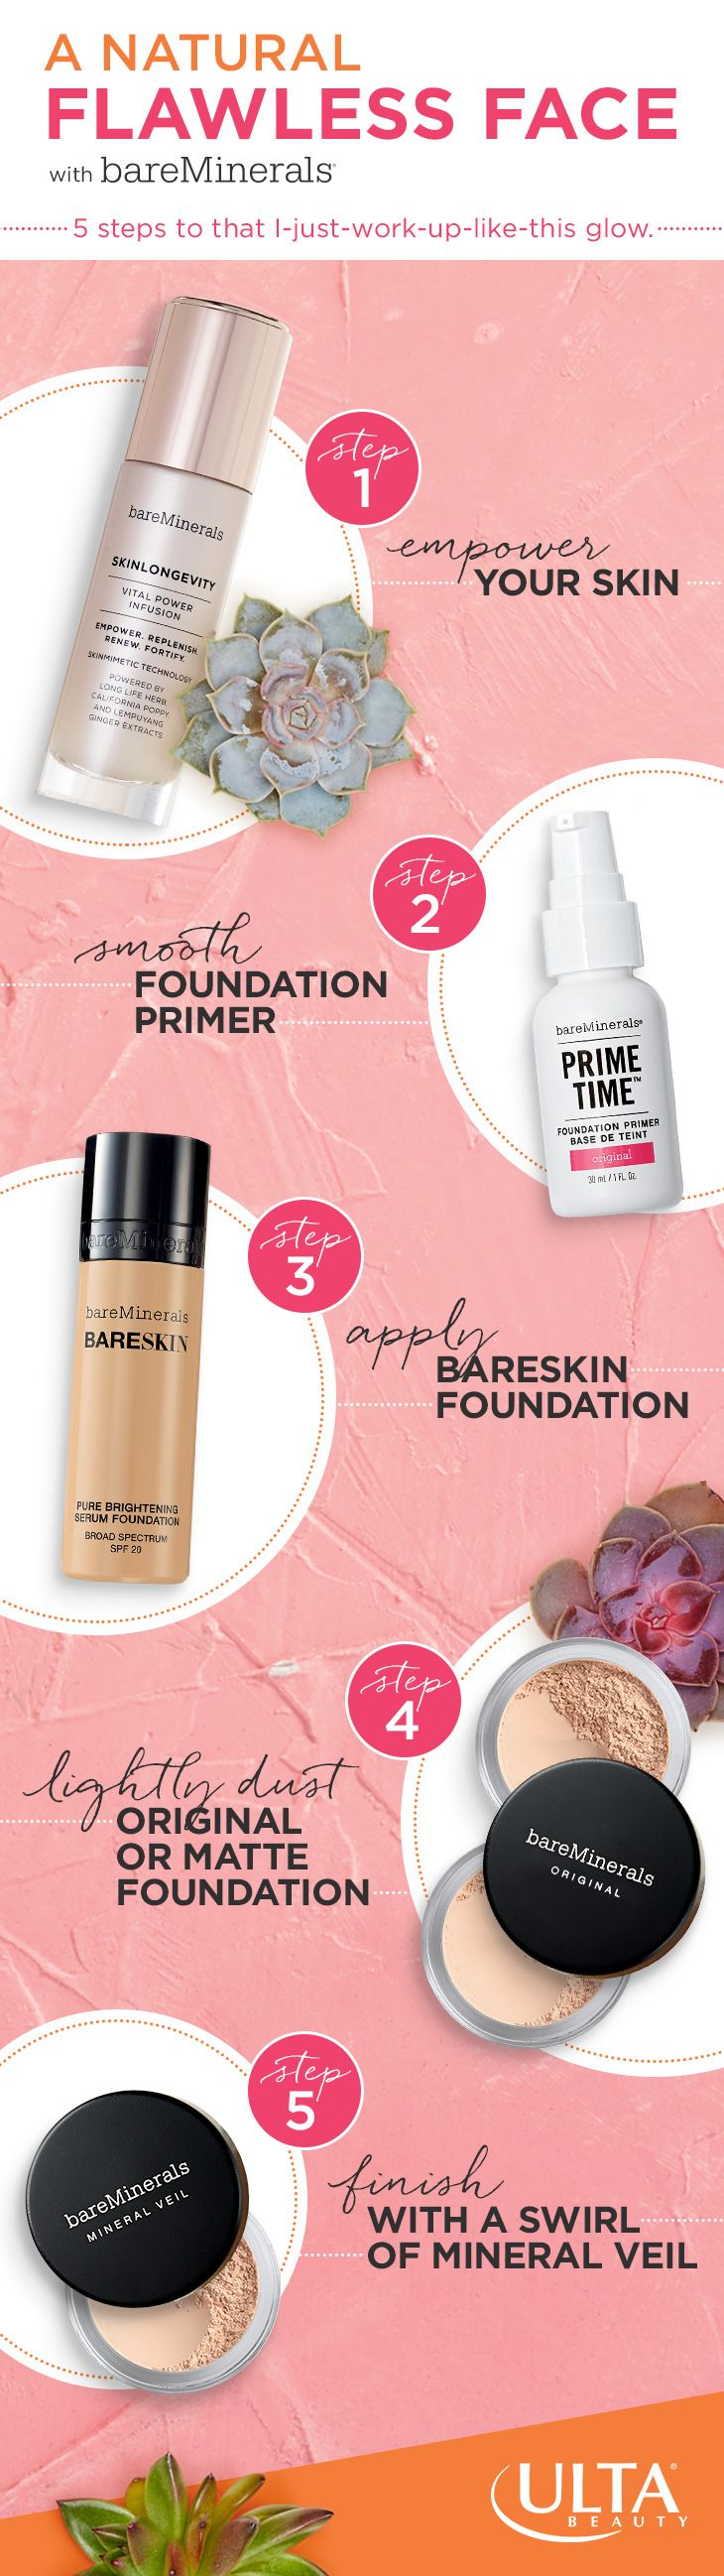 Getting a flawless face is a no-brainer with five simple steps from bareMinerals, including Skinlongevity, an intense anti-ager & their perfecting Bareskin foundation, available at Ulta Beauty.